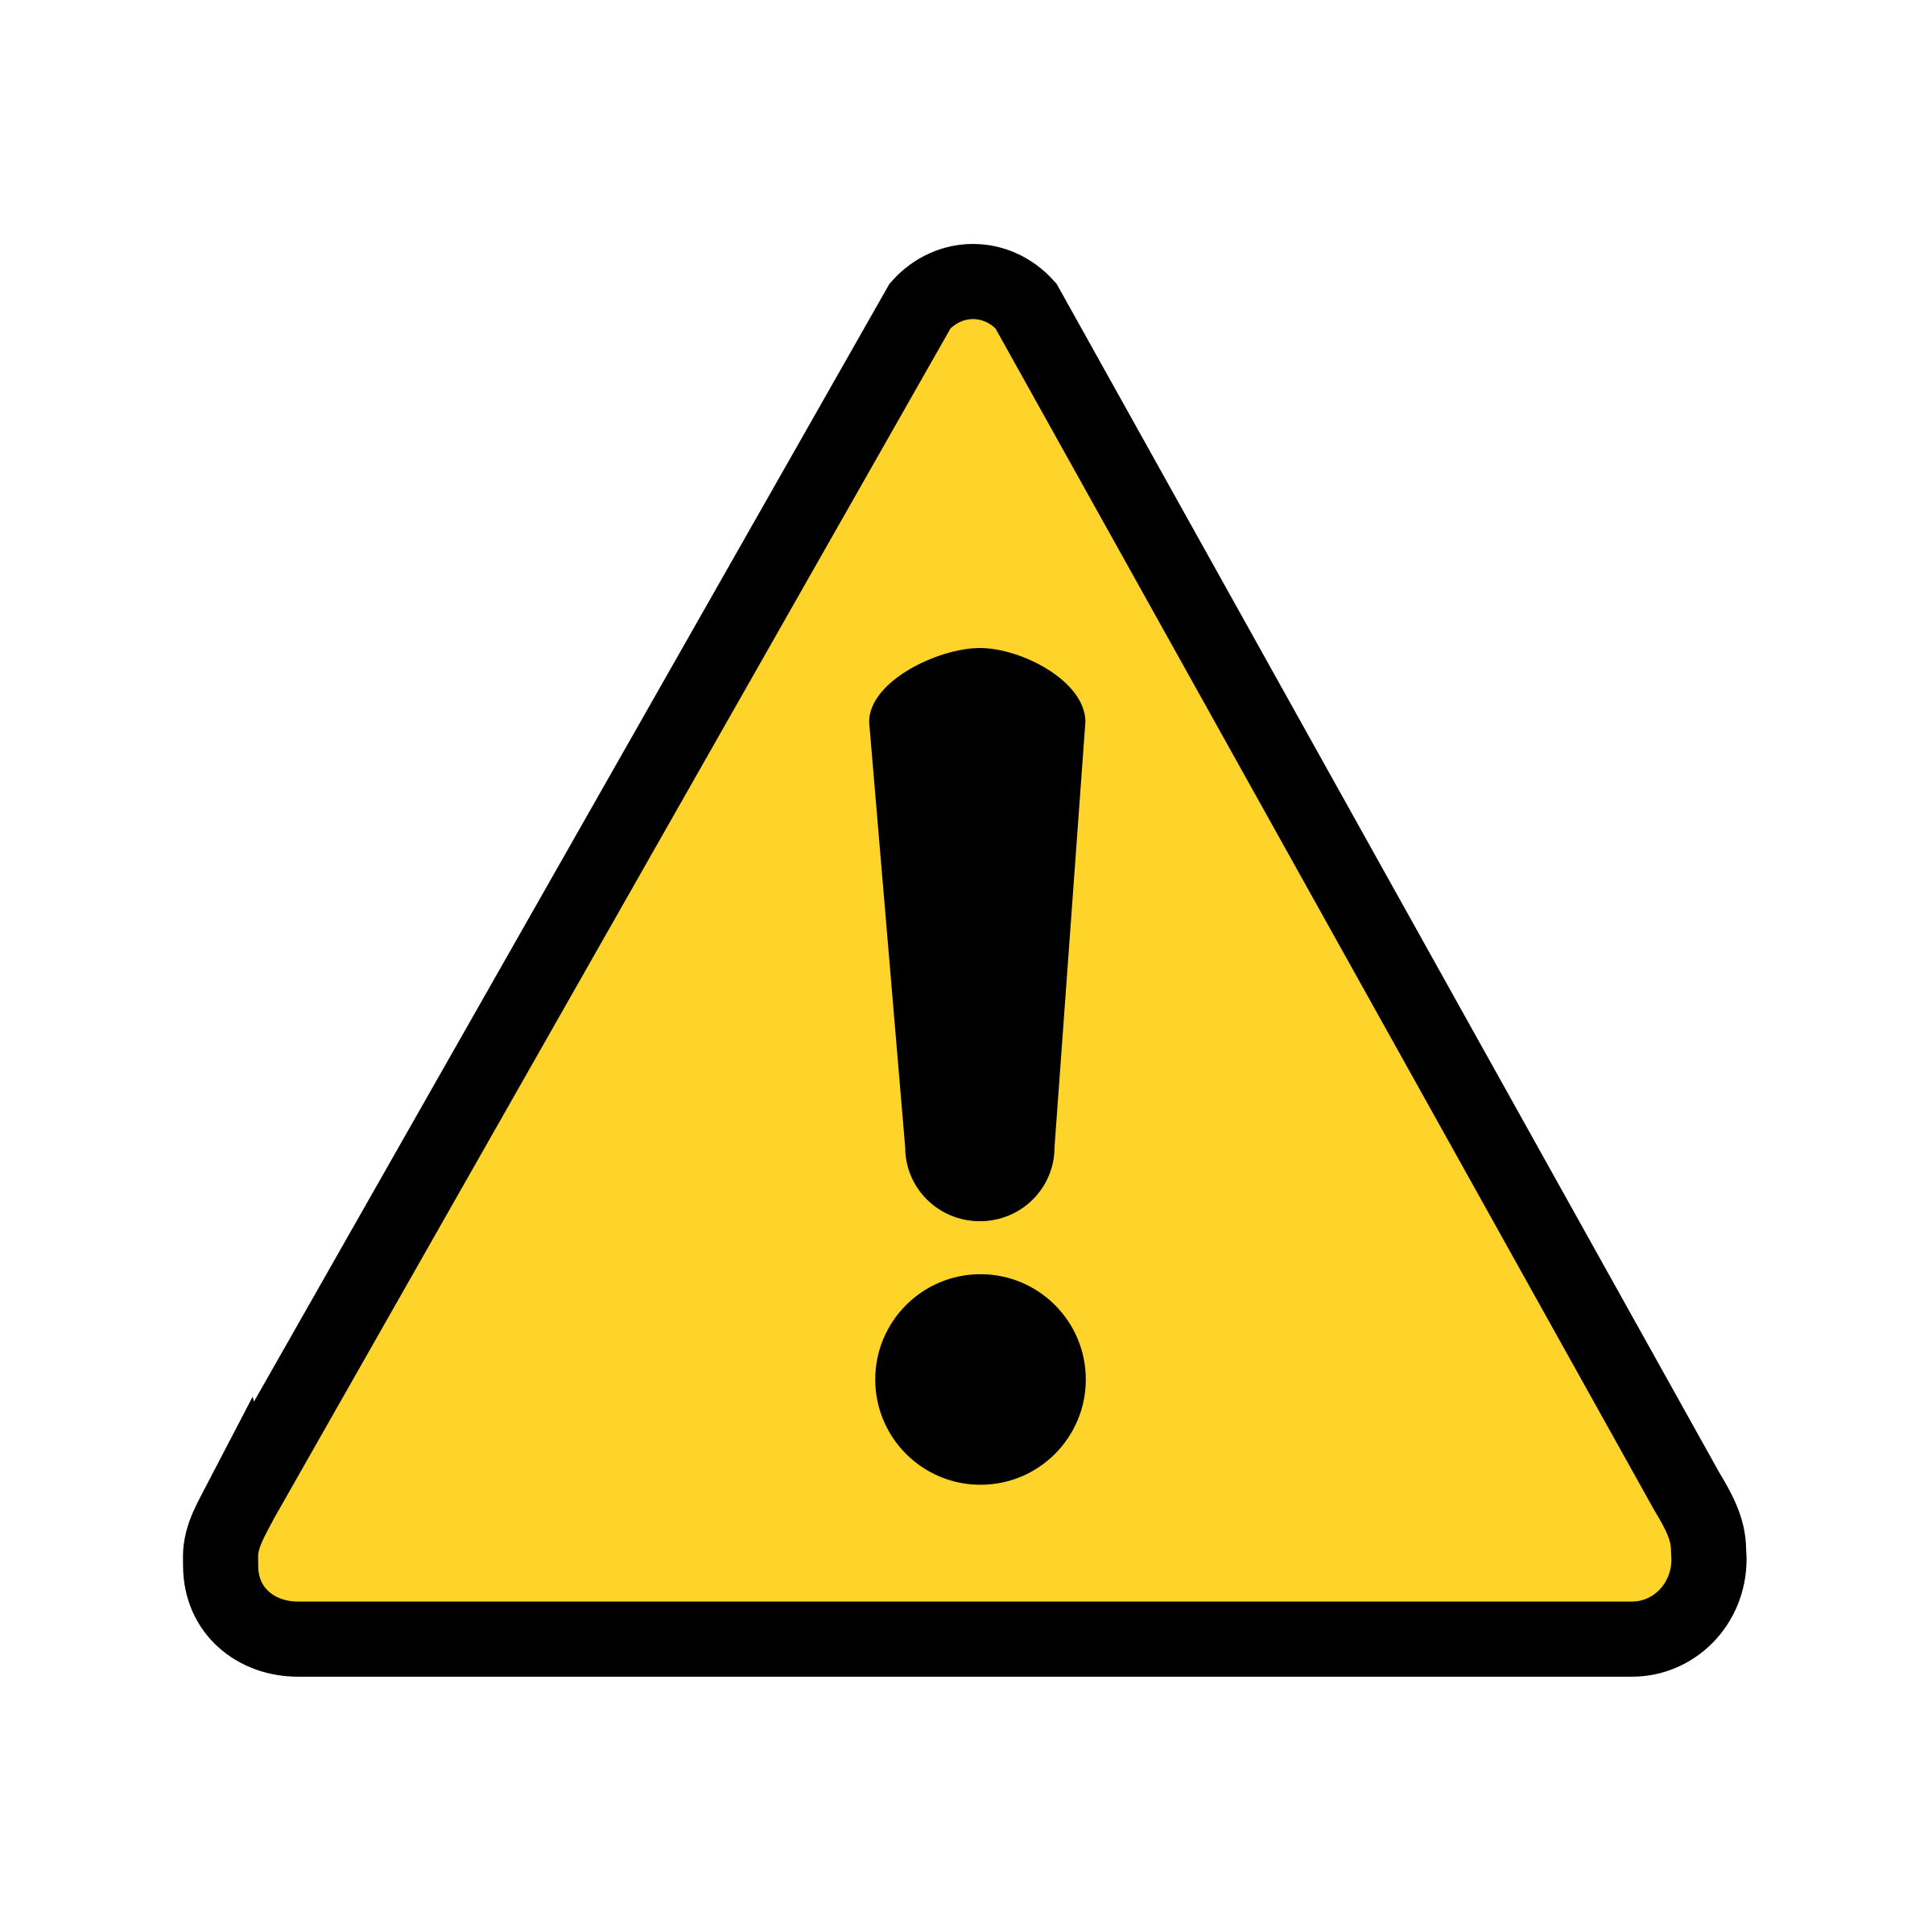 Warning Icons Png Download image #2766